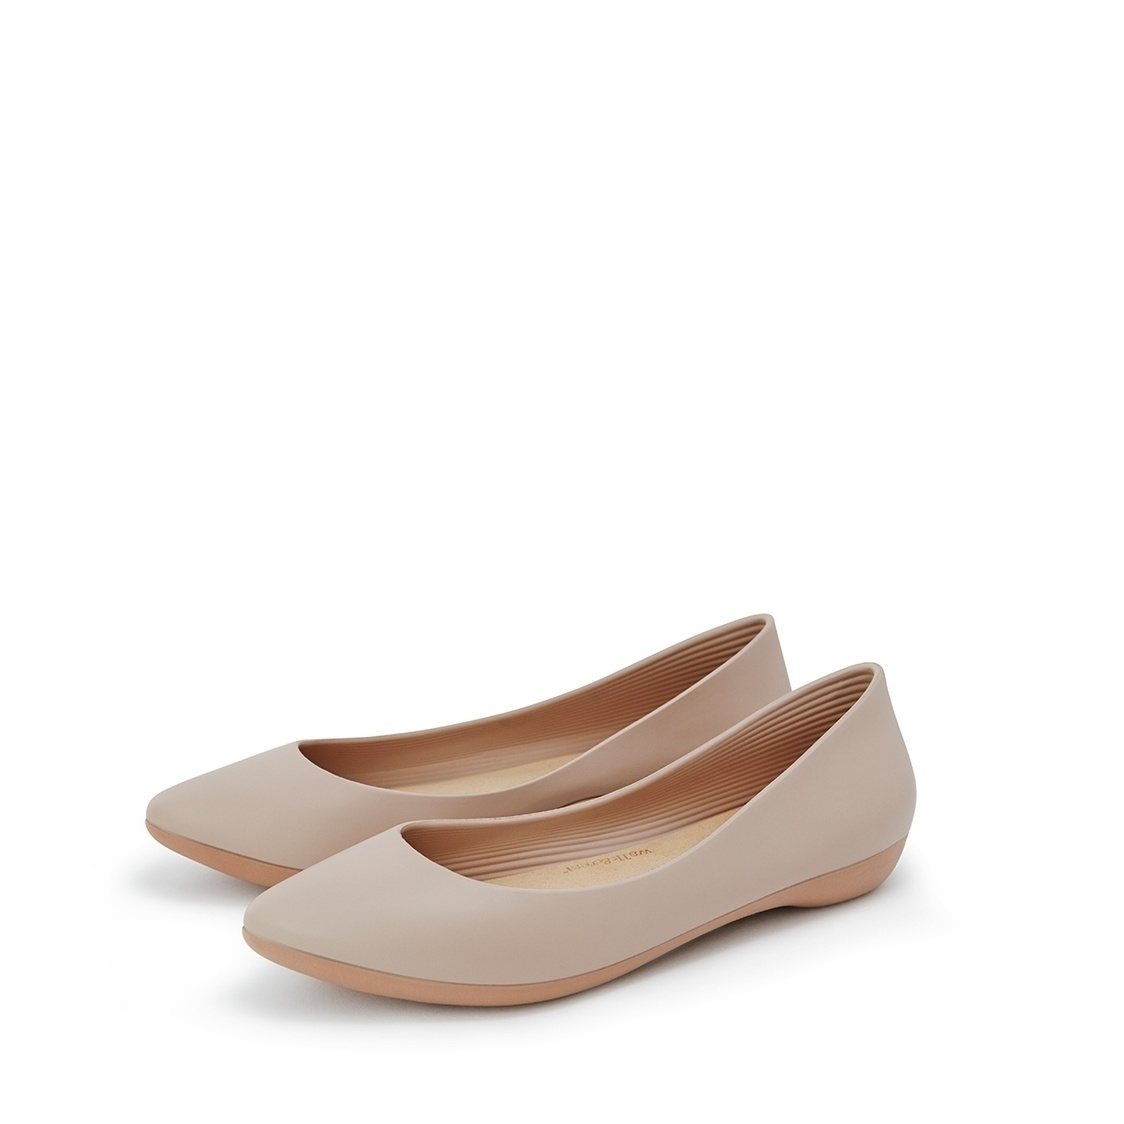 F2 Flat-Pointed Heel height 2cm Nude